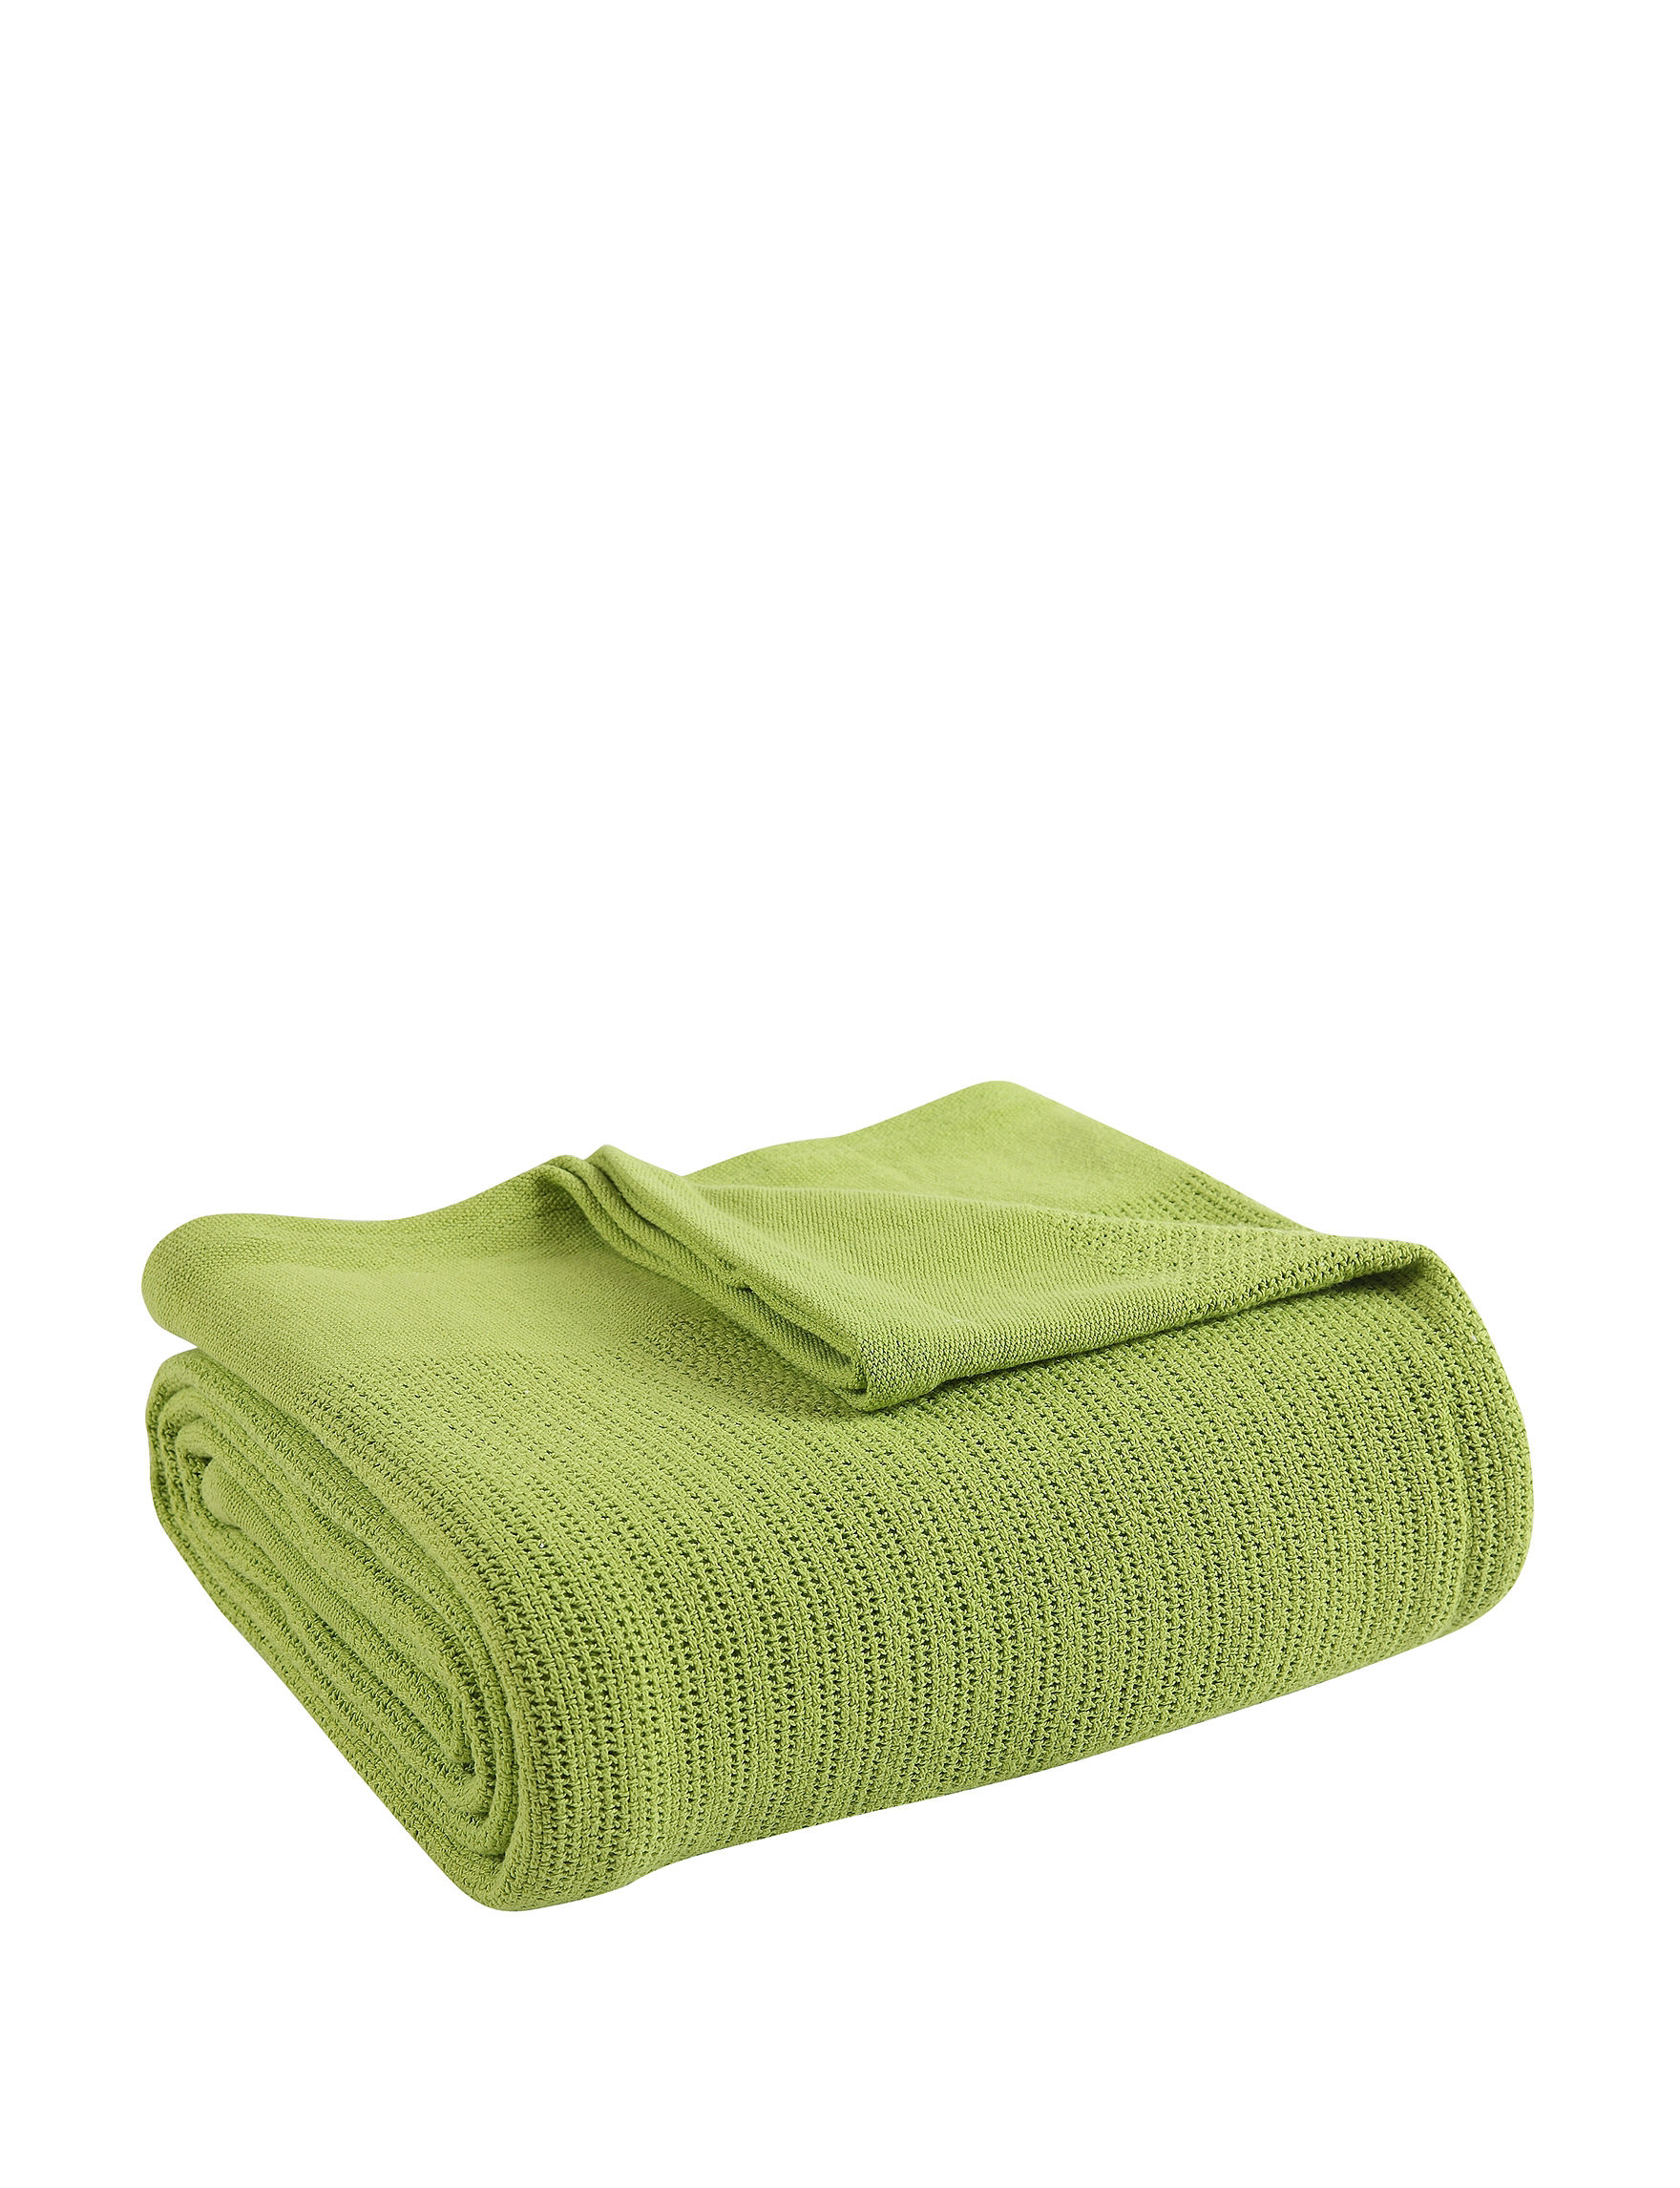 Fiesta Lime Blankets & Throws